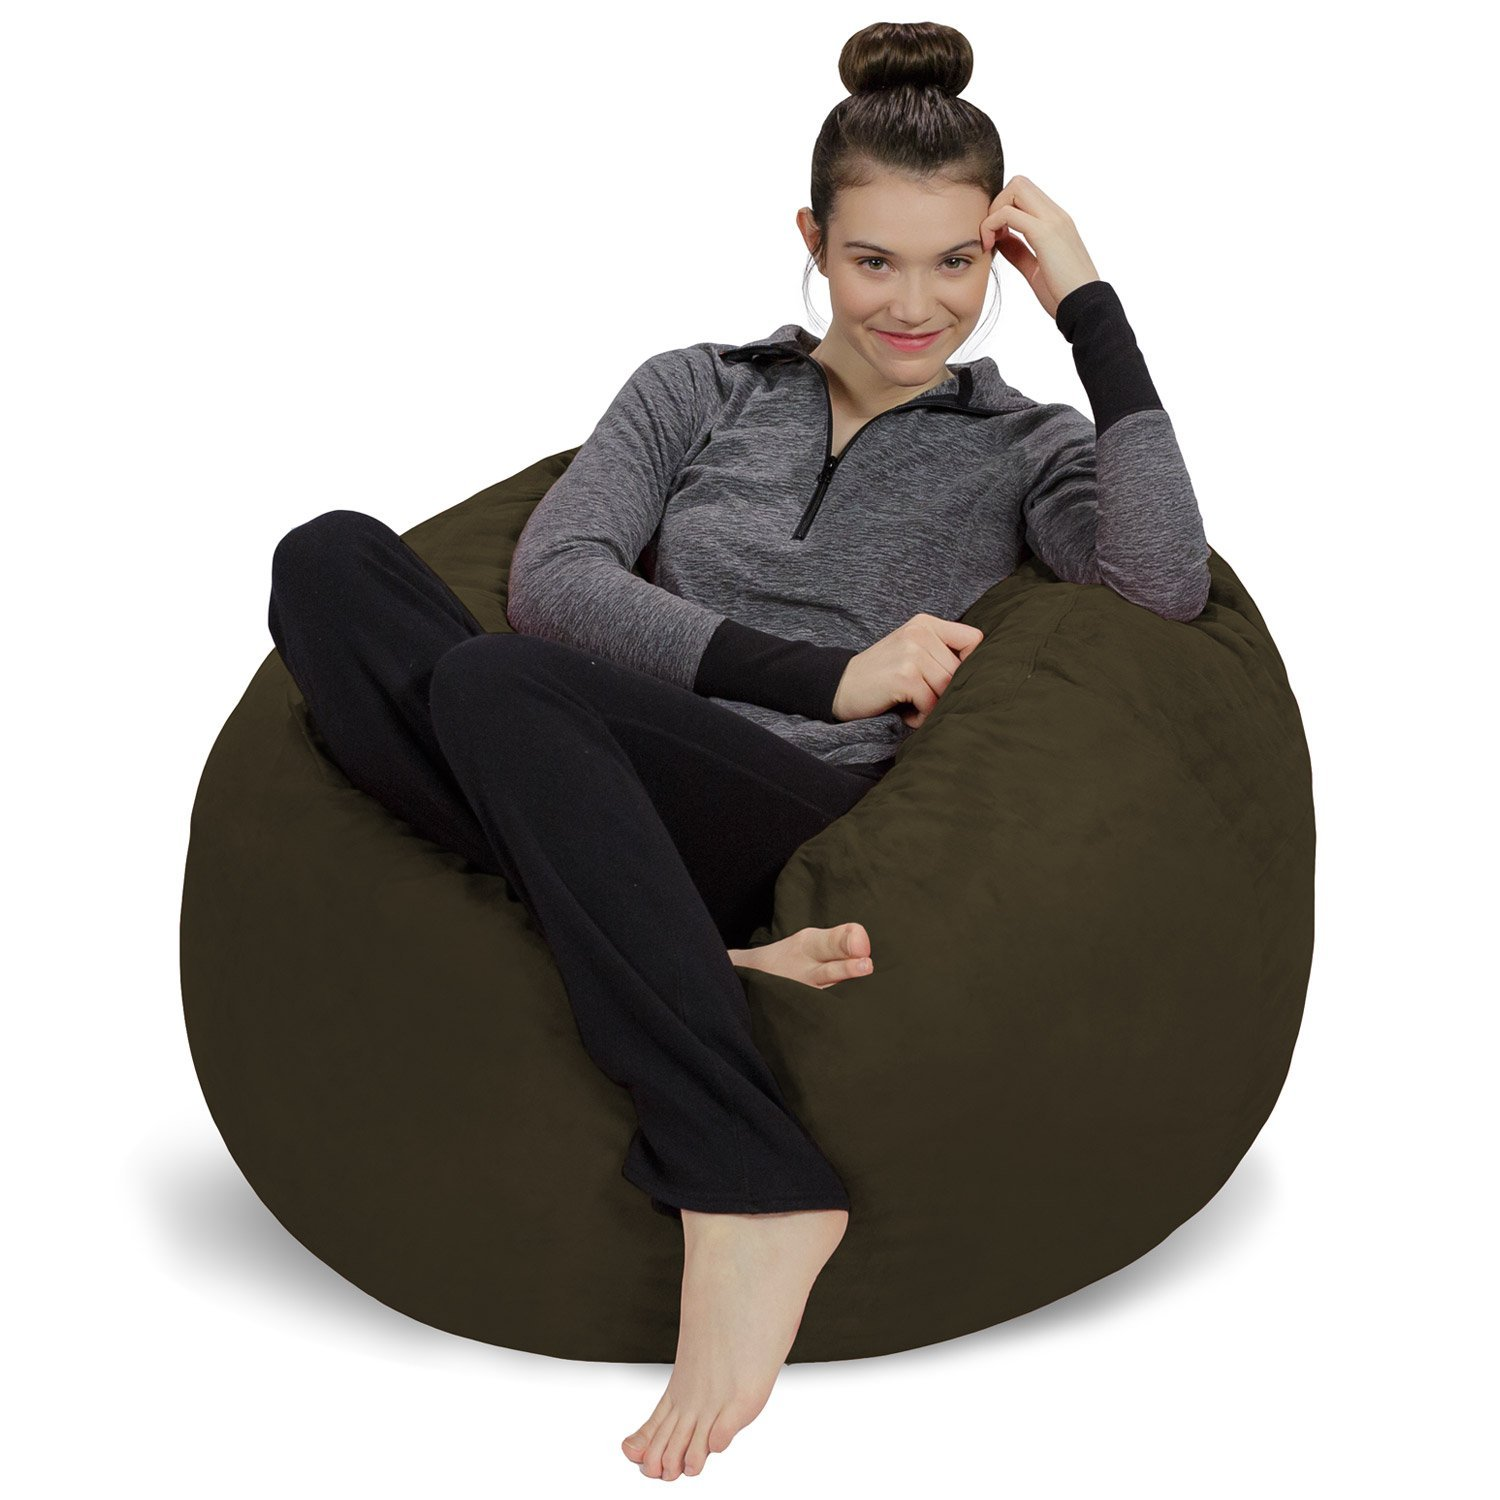 Sofa Sack - Plush, Ultra Soft Bean Bag Chair - Memory Foam Bean Bag Chair with Microsuede Cover - Stuffed Foam Filled Furniture and Accessories for Dorm Room - Olive 3'